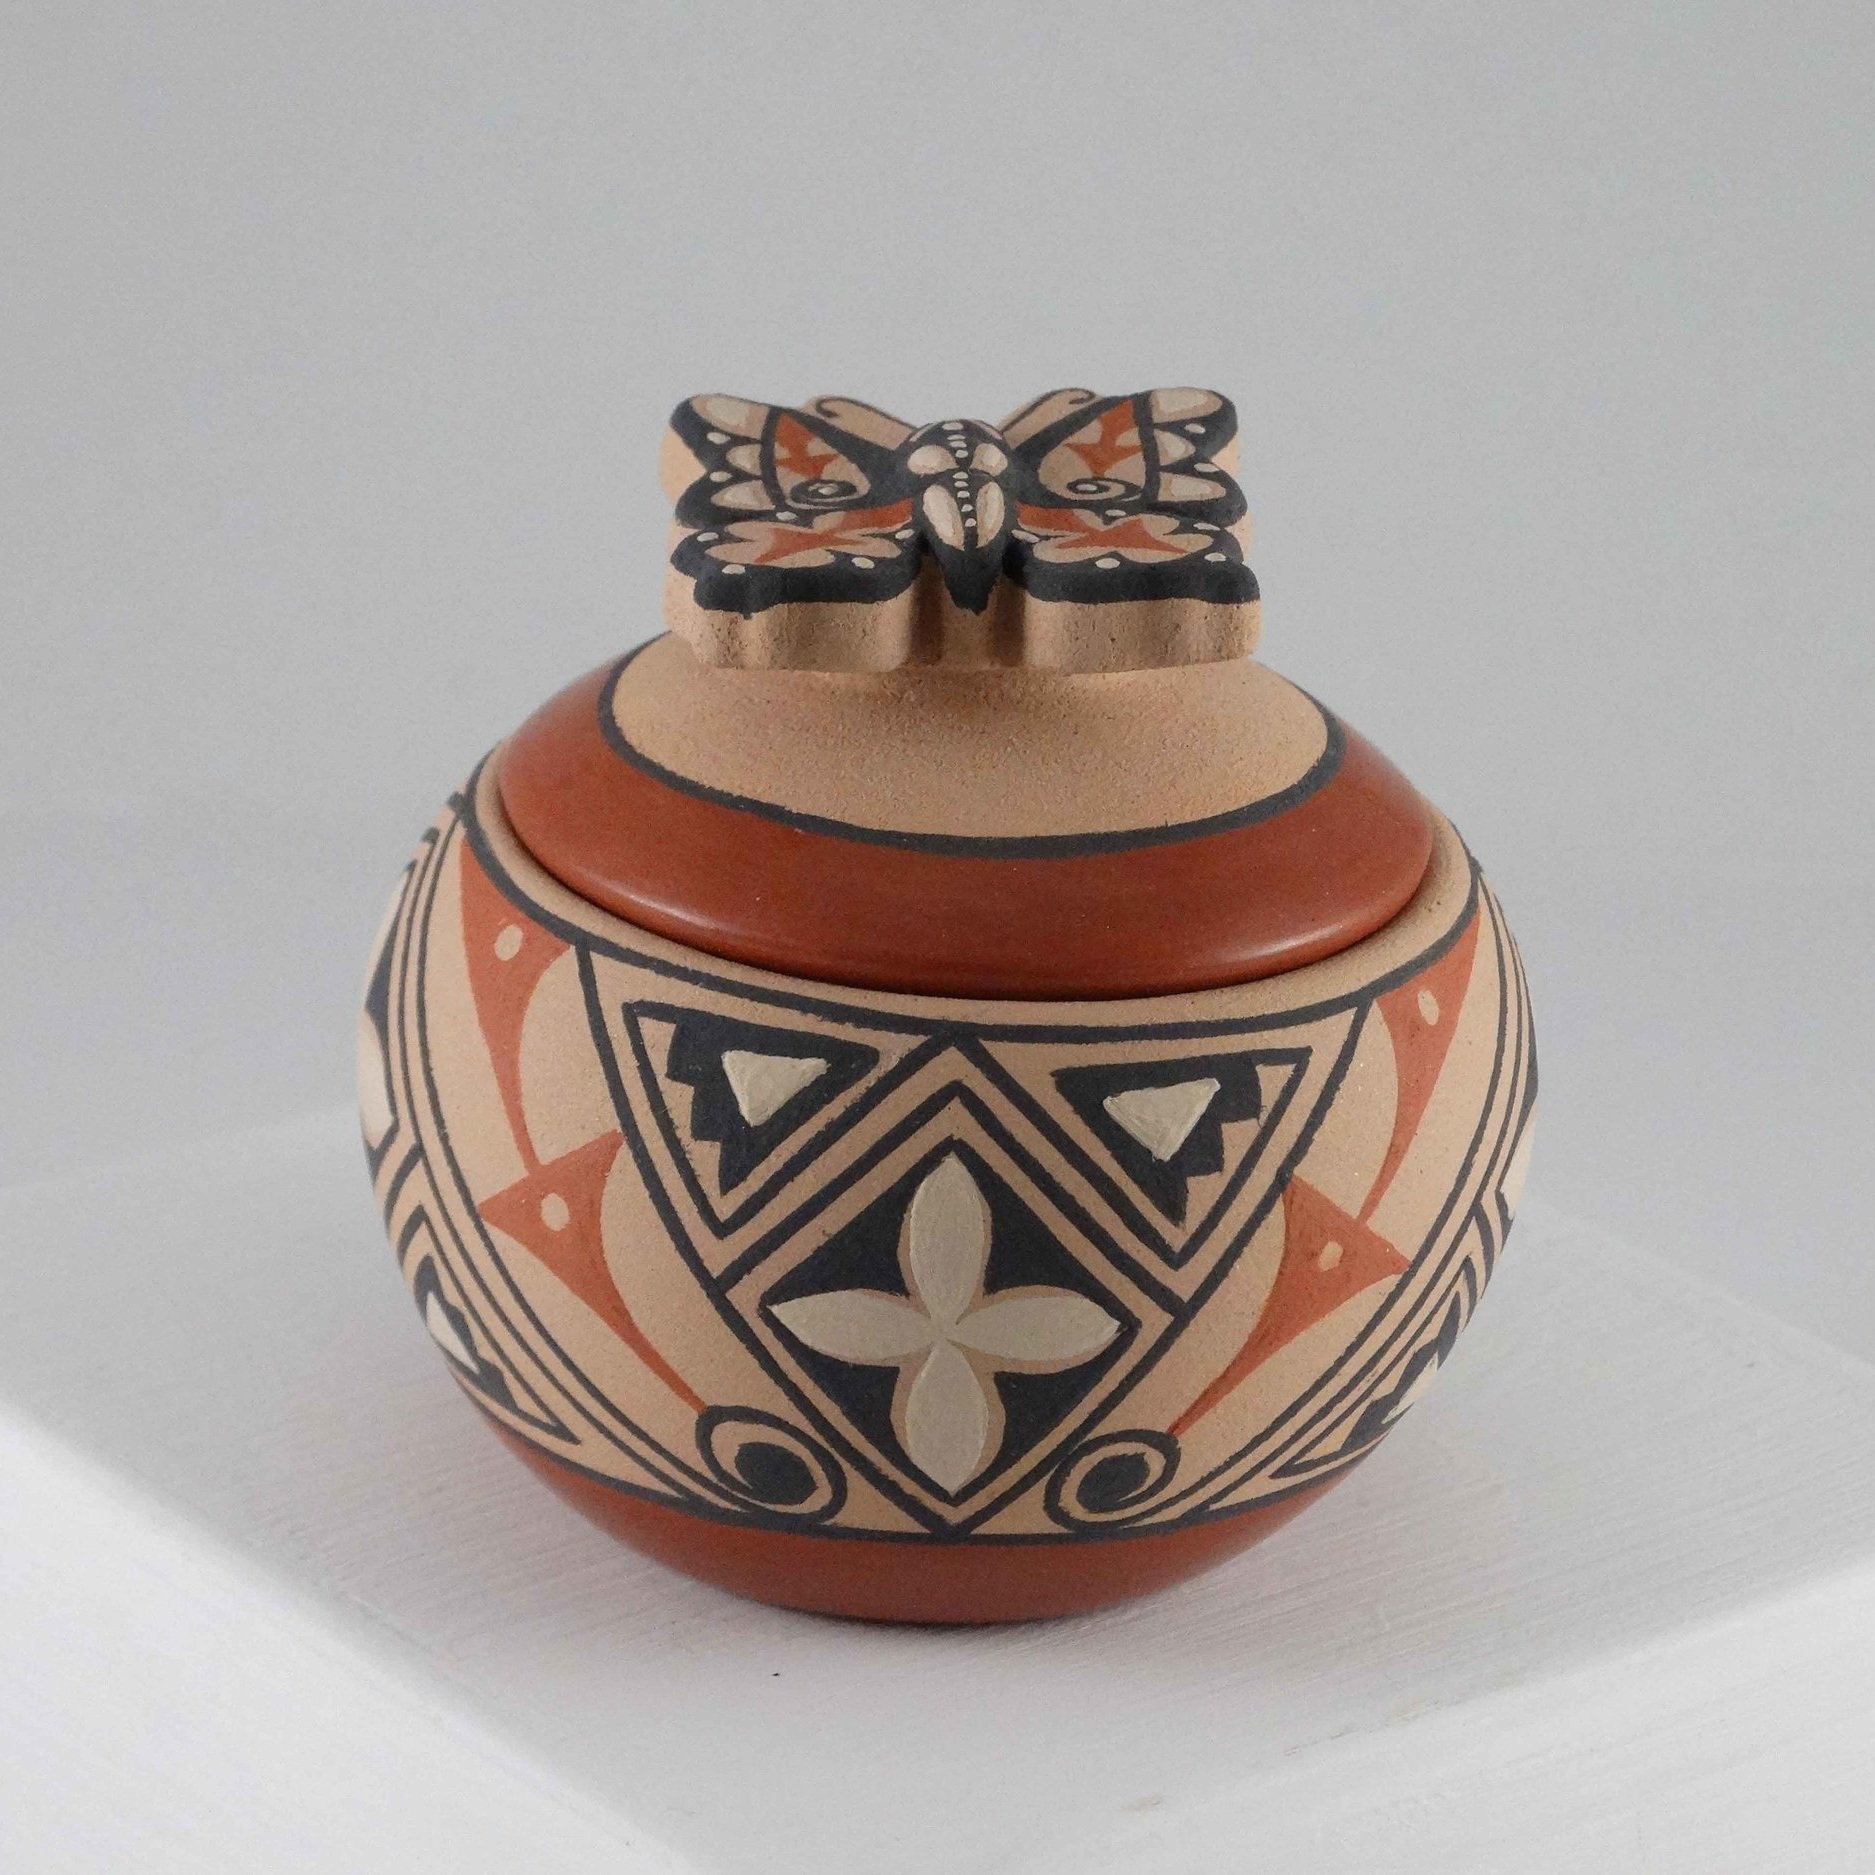 Polychrome Jar by Mary Louise Eteeyan (click to enlarge)